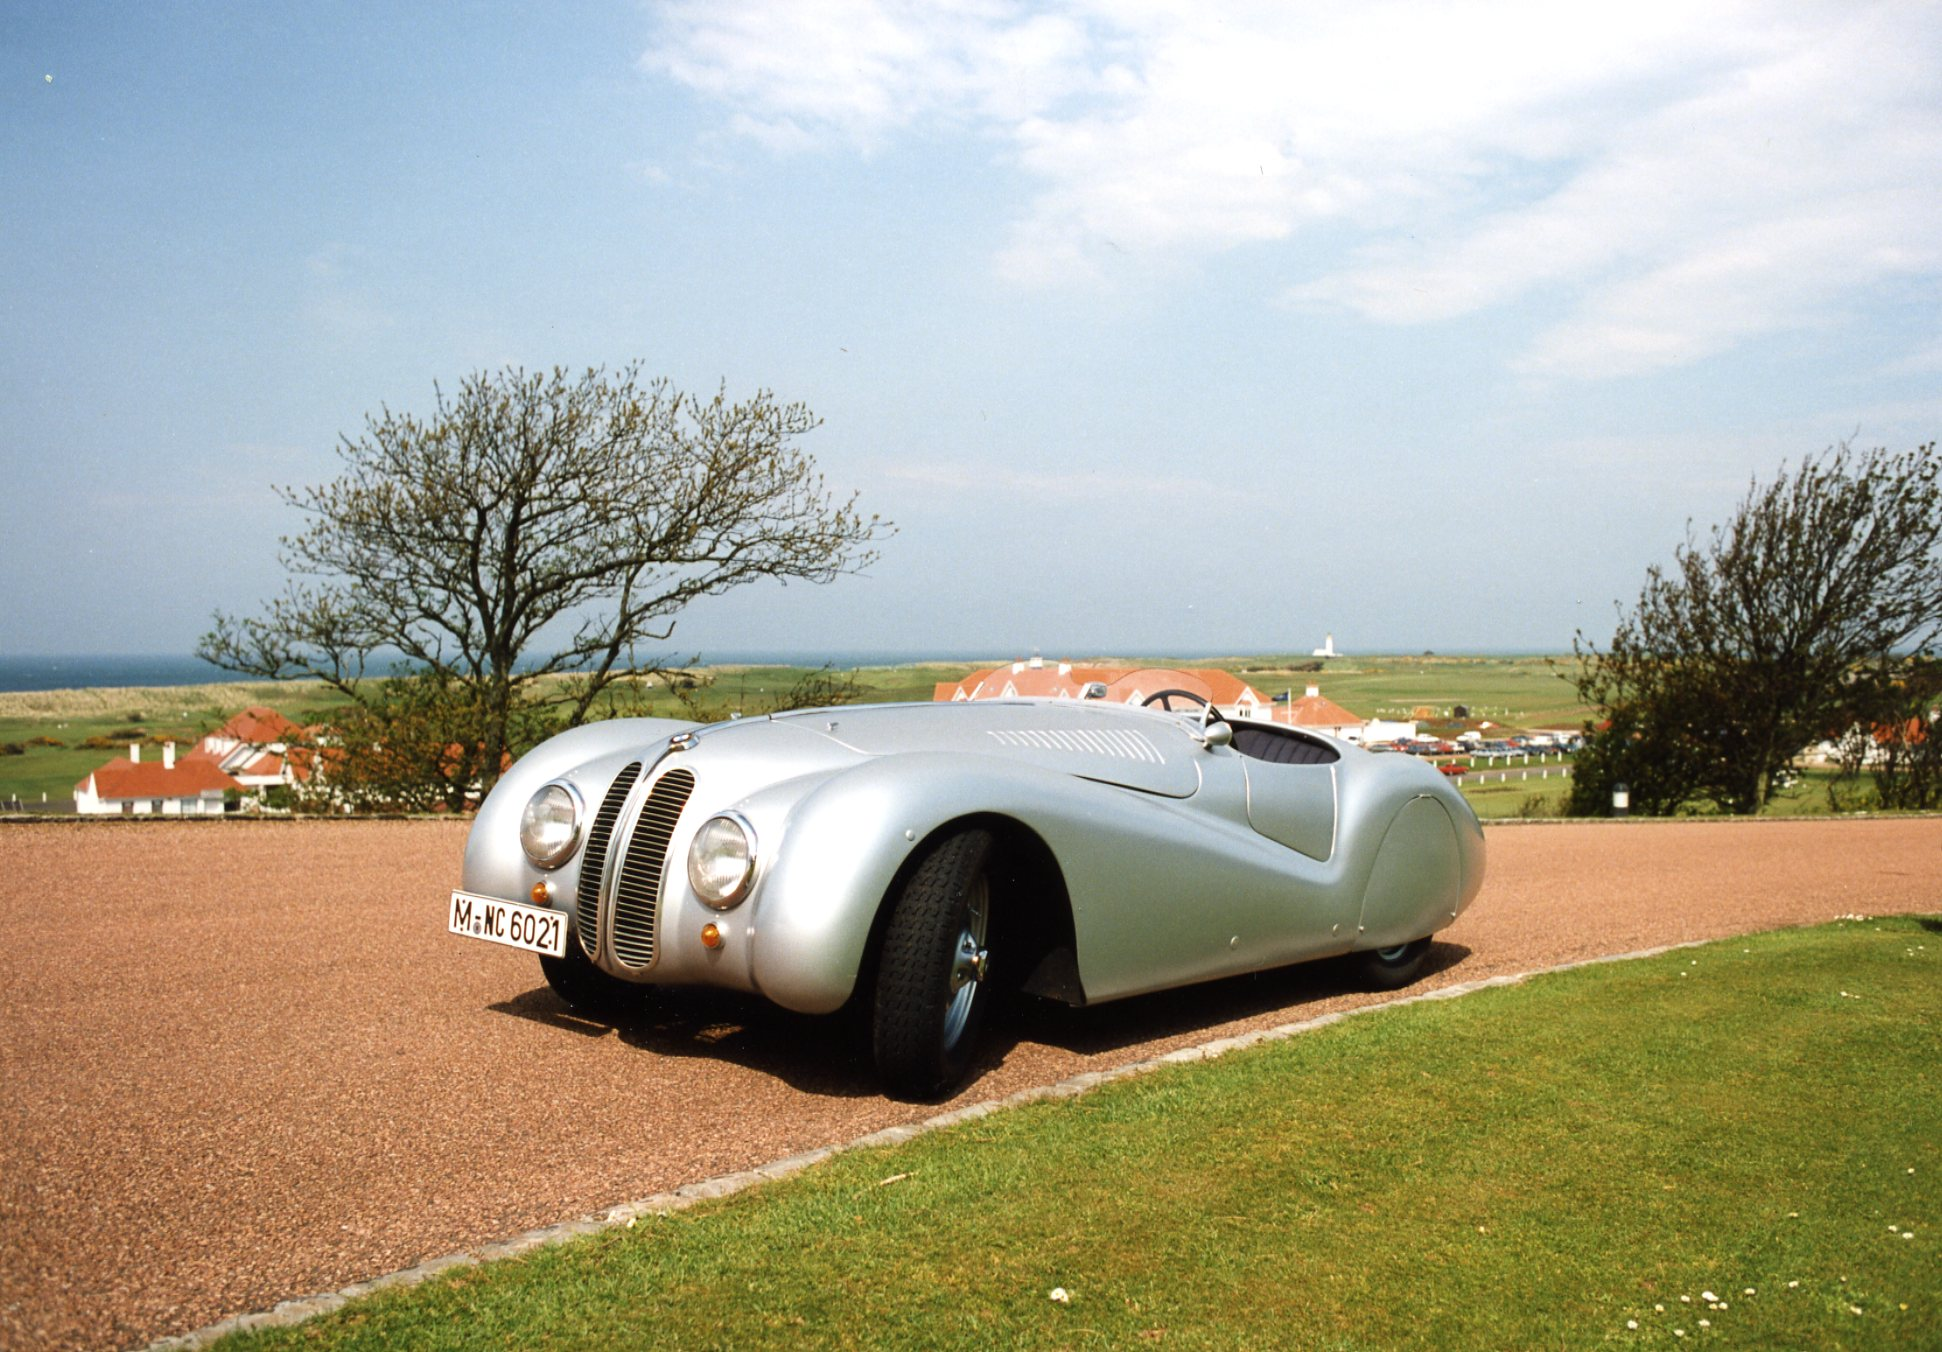 BMW reinstated the kidney-shaped grille during restoration of the lightweight aluminium body. Frazer-Nash had a chrome curved appliqué one on its prototype. In the distance the renovated lighthouse marks the course's halfway point with seating for guests to enjoy Ailsa Craig.